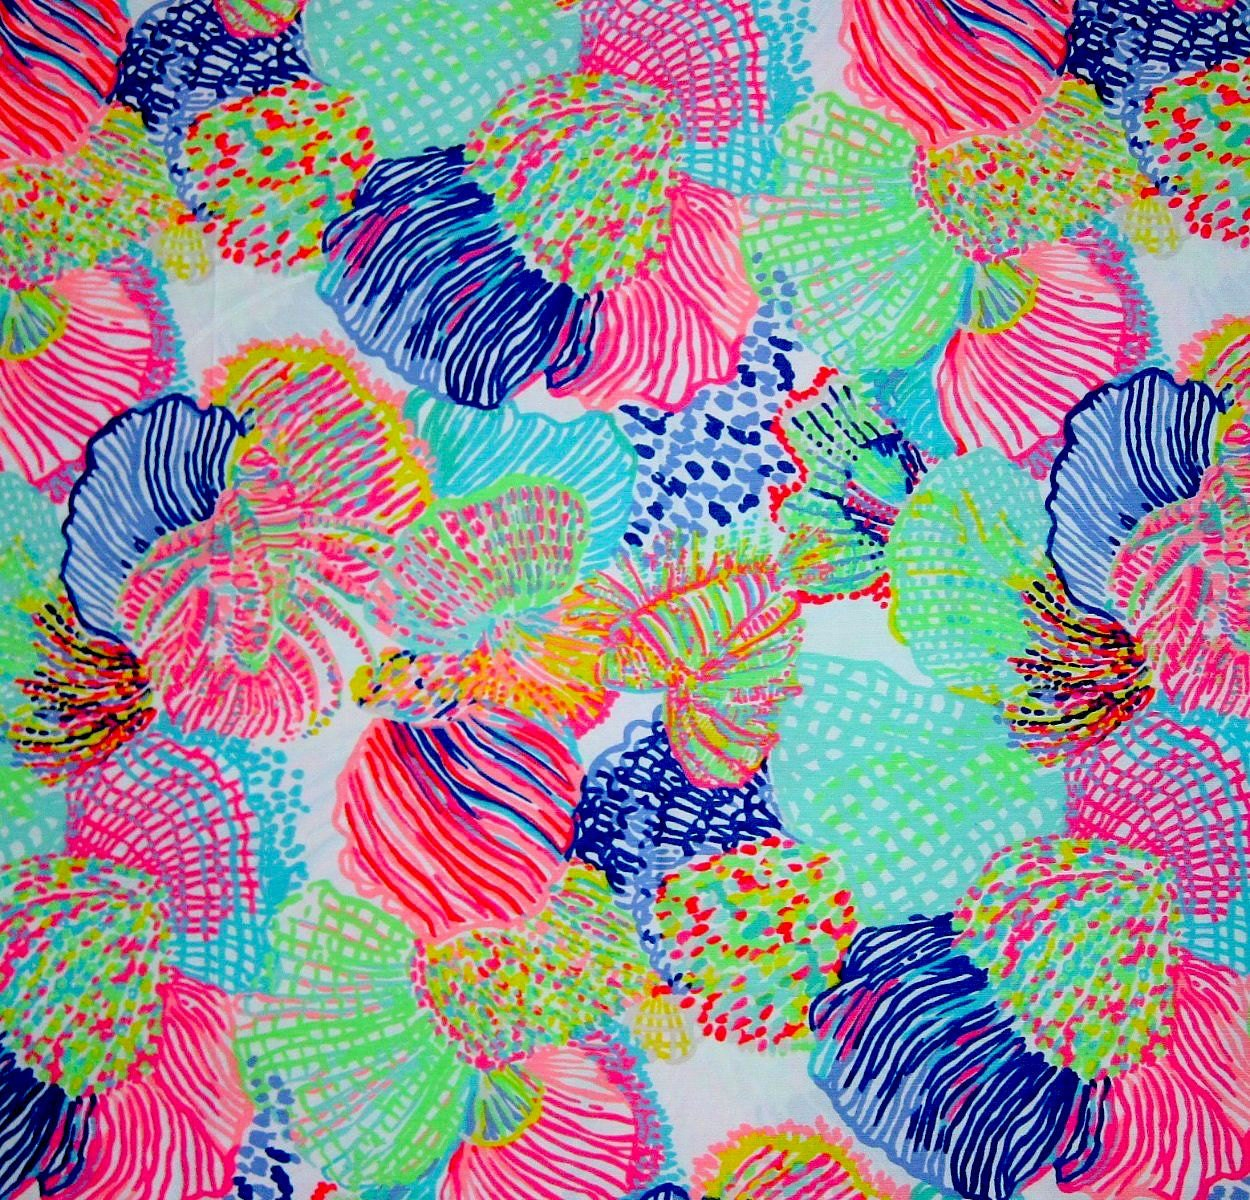 Lilly Pulitzer Fabric Roar Of The Seas Multi Summer 2016 Fabric 18x18 Or 18x9 Lilly